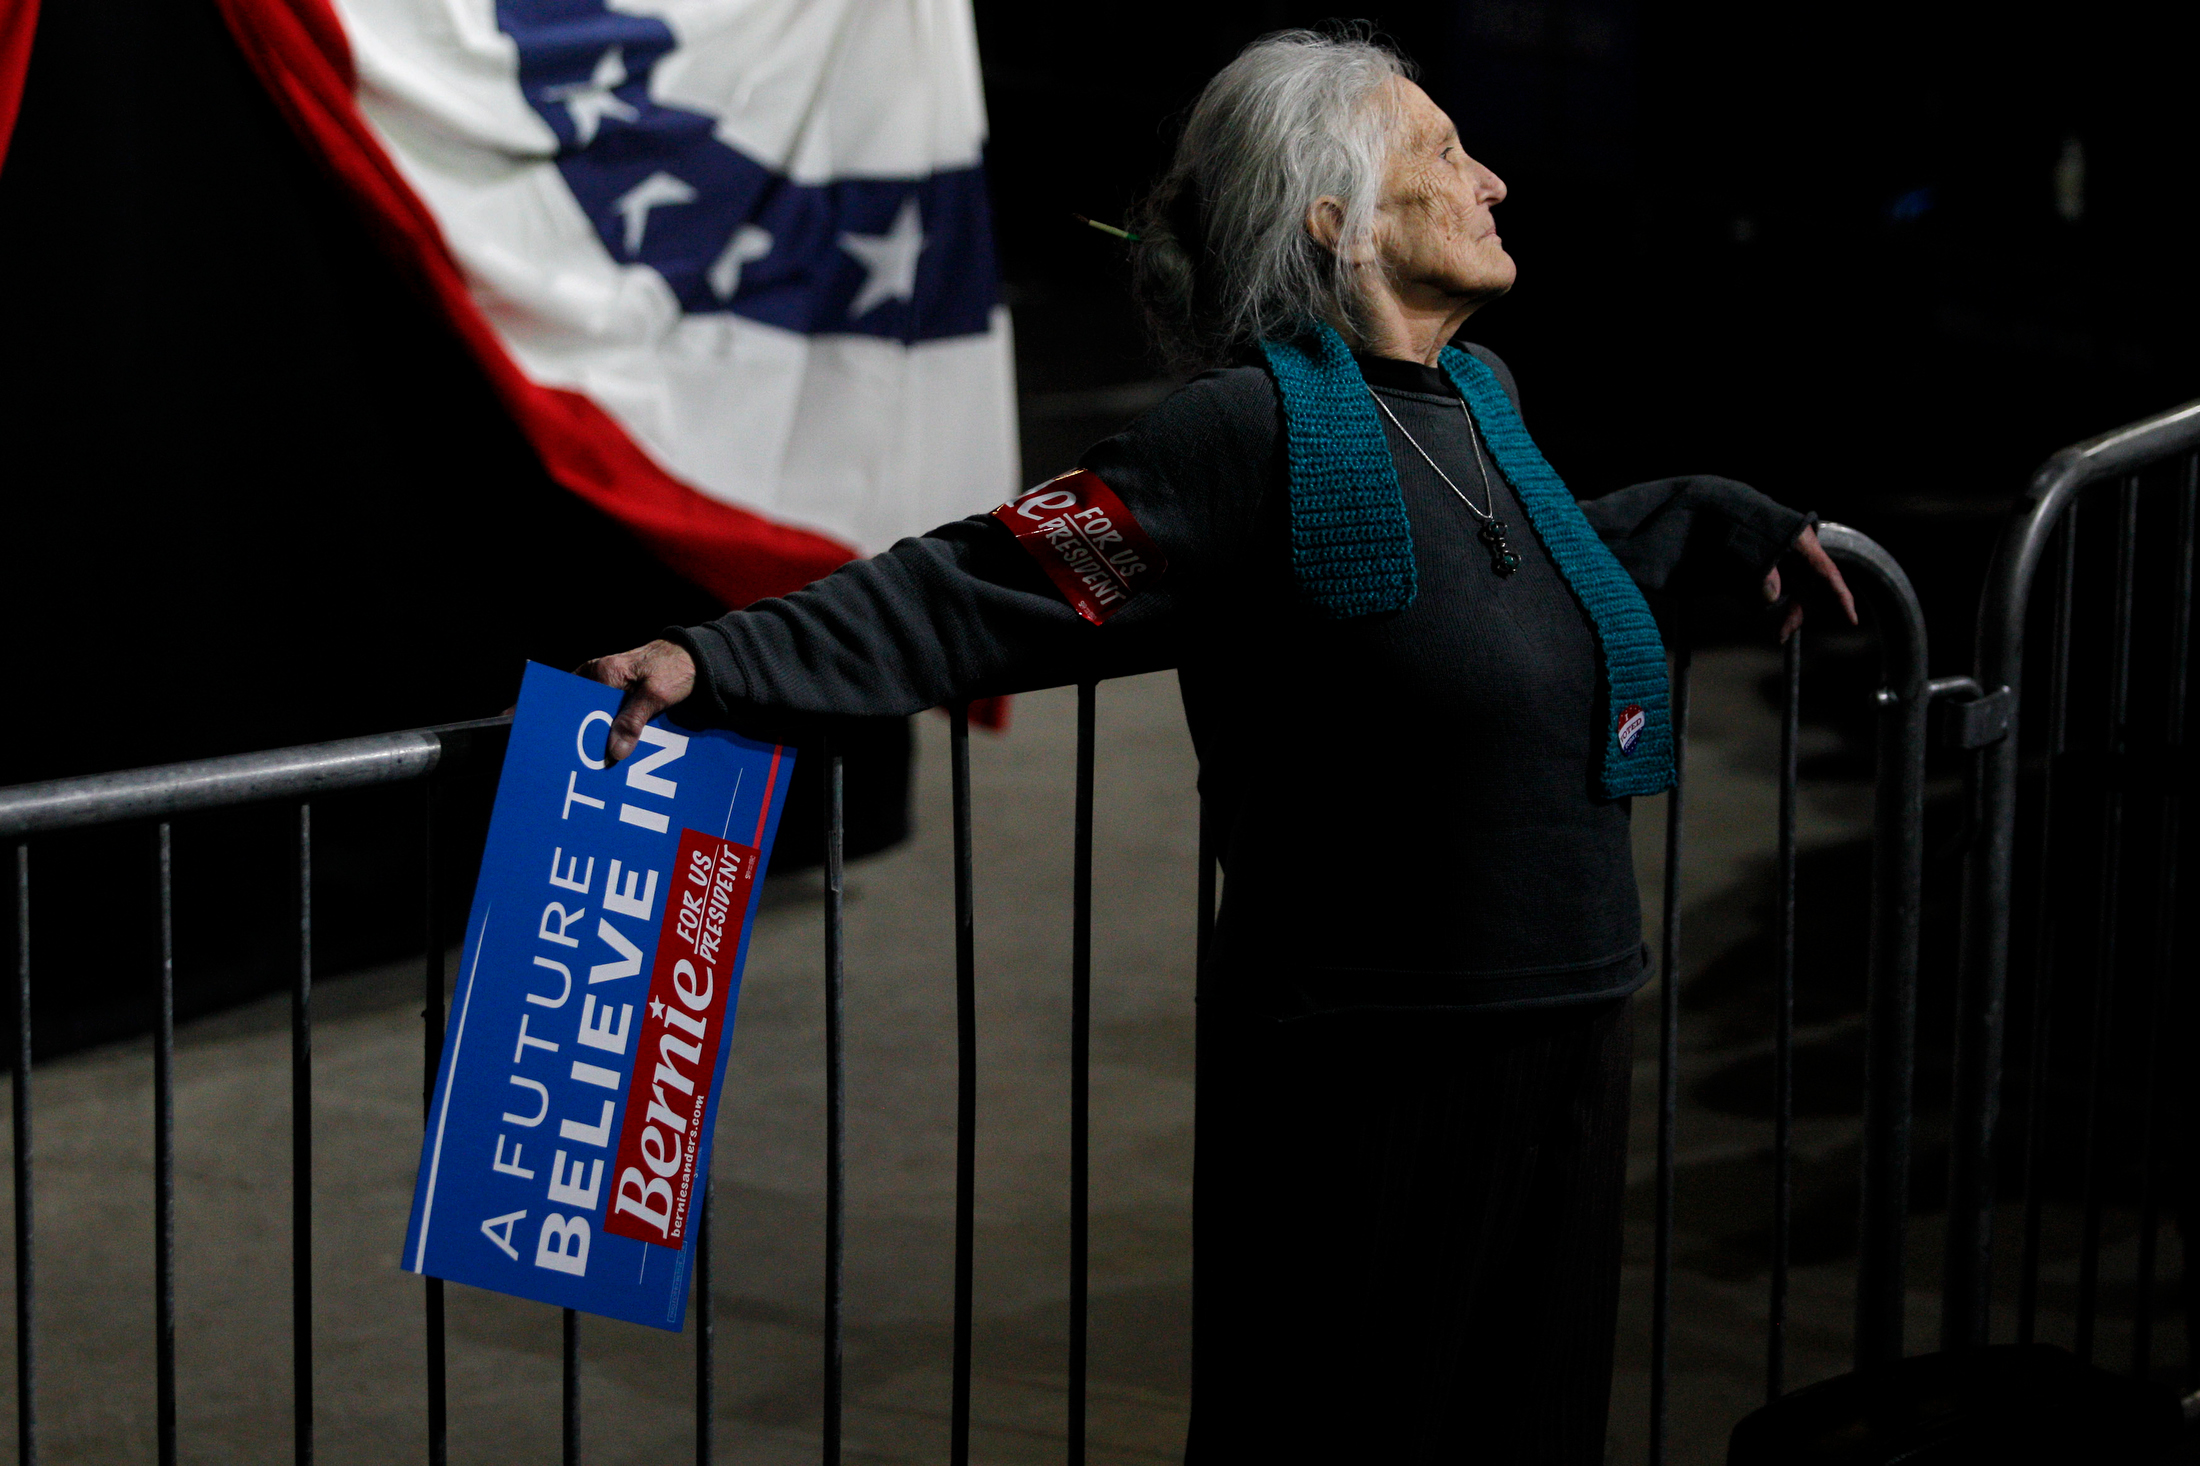 A supporter of Democratic presidential candidate Bernie Sanders leans against a security barrier while waiting on the candidate to arrive at a Super Tuesday rally at the Champlain Valley Exposition in Essex Junction, Vermont on March 1, 2016.